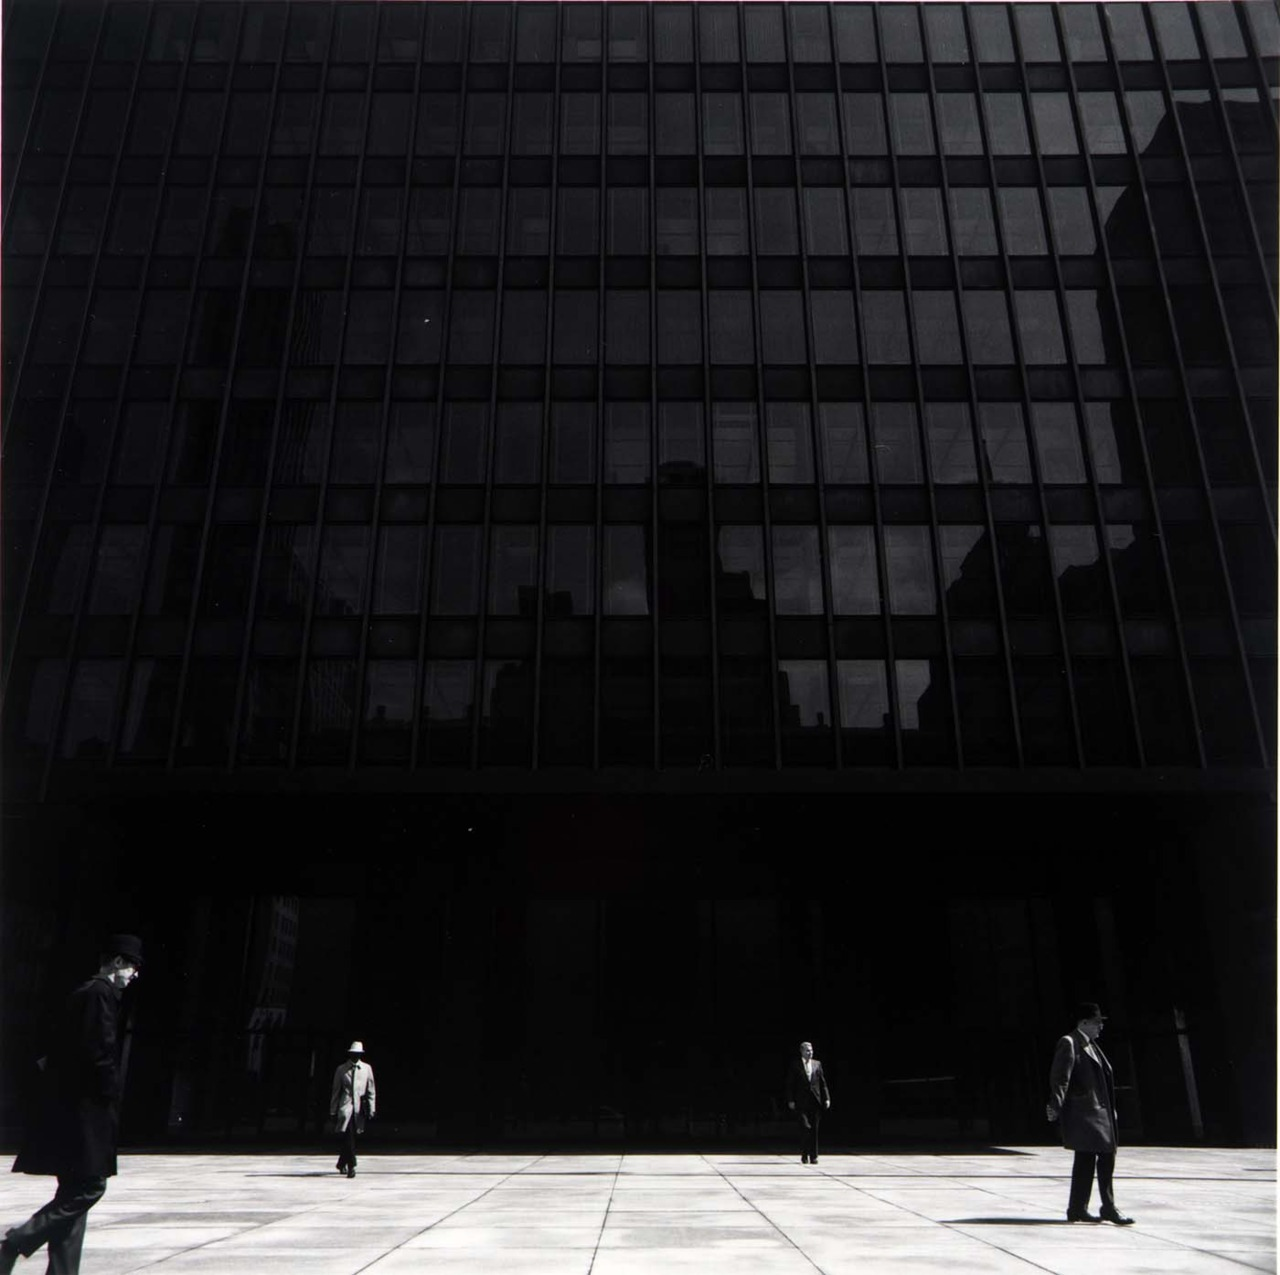 yama-bato:  Untitled—New York 1971   Harry Callahan   Smithsonian American Art Museum